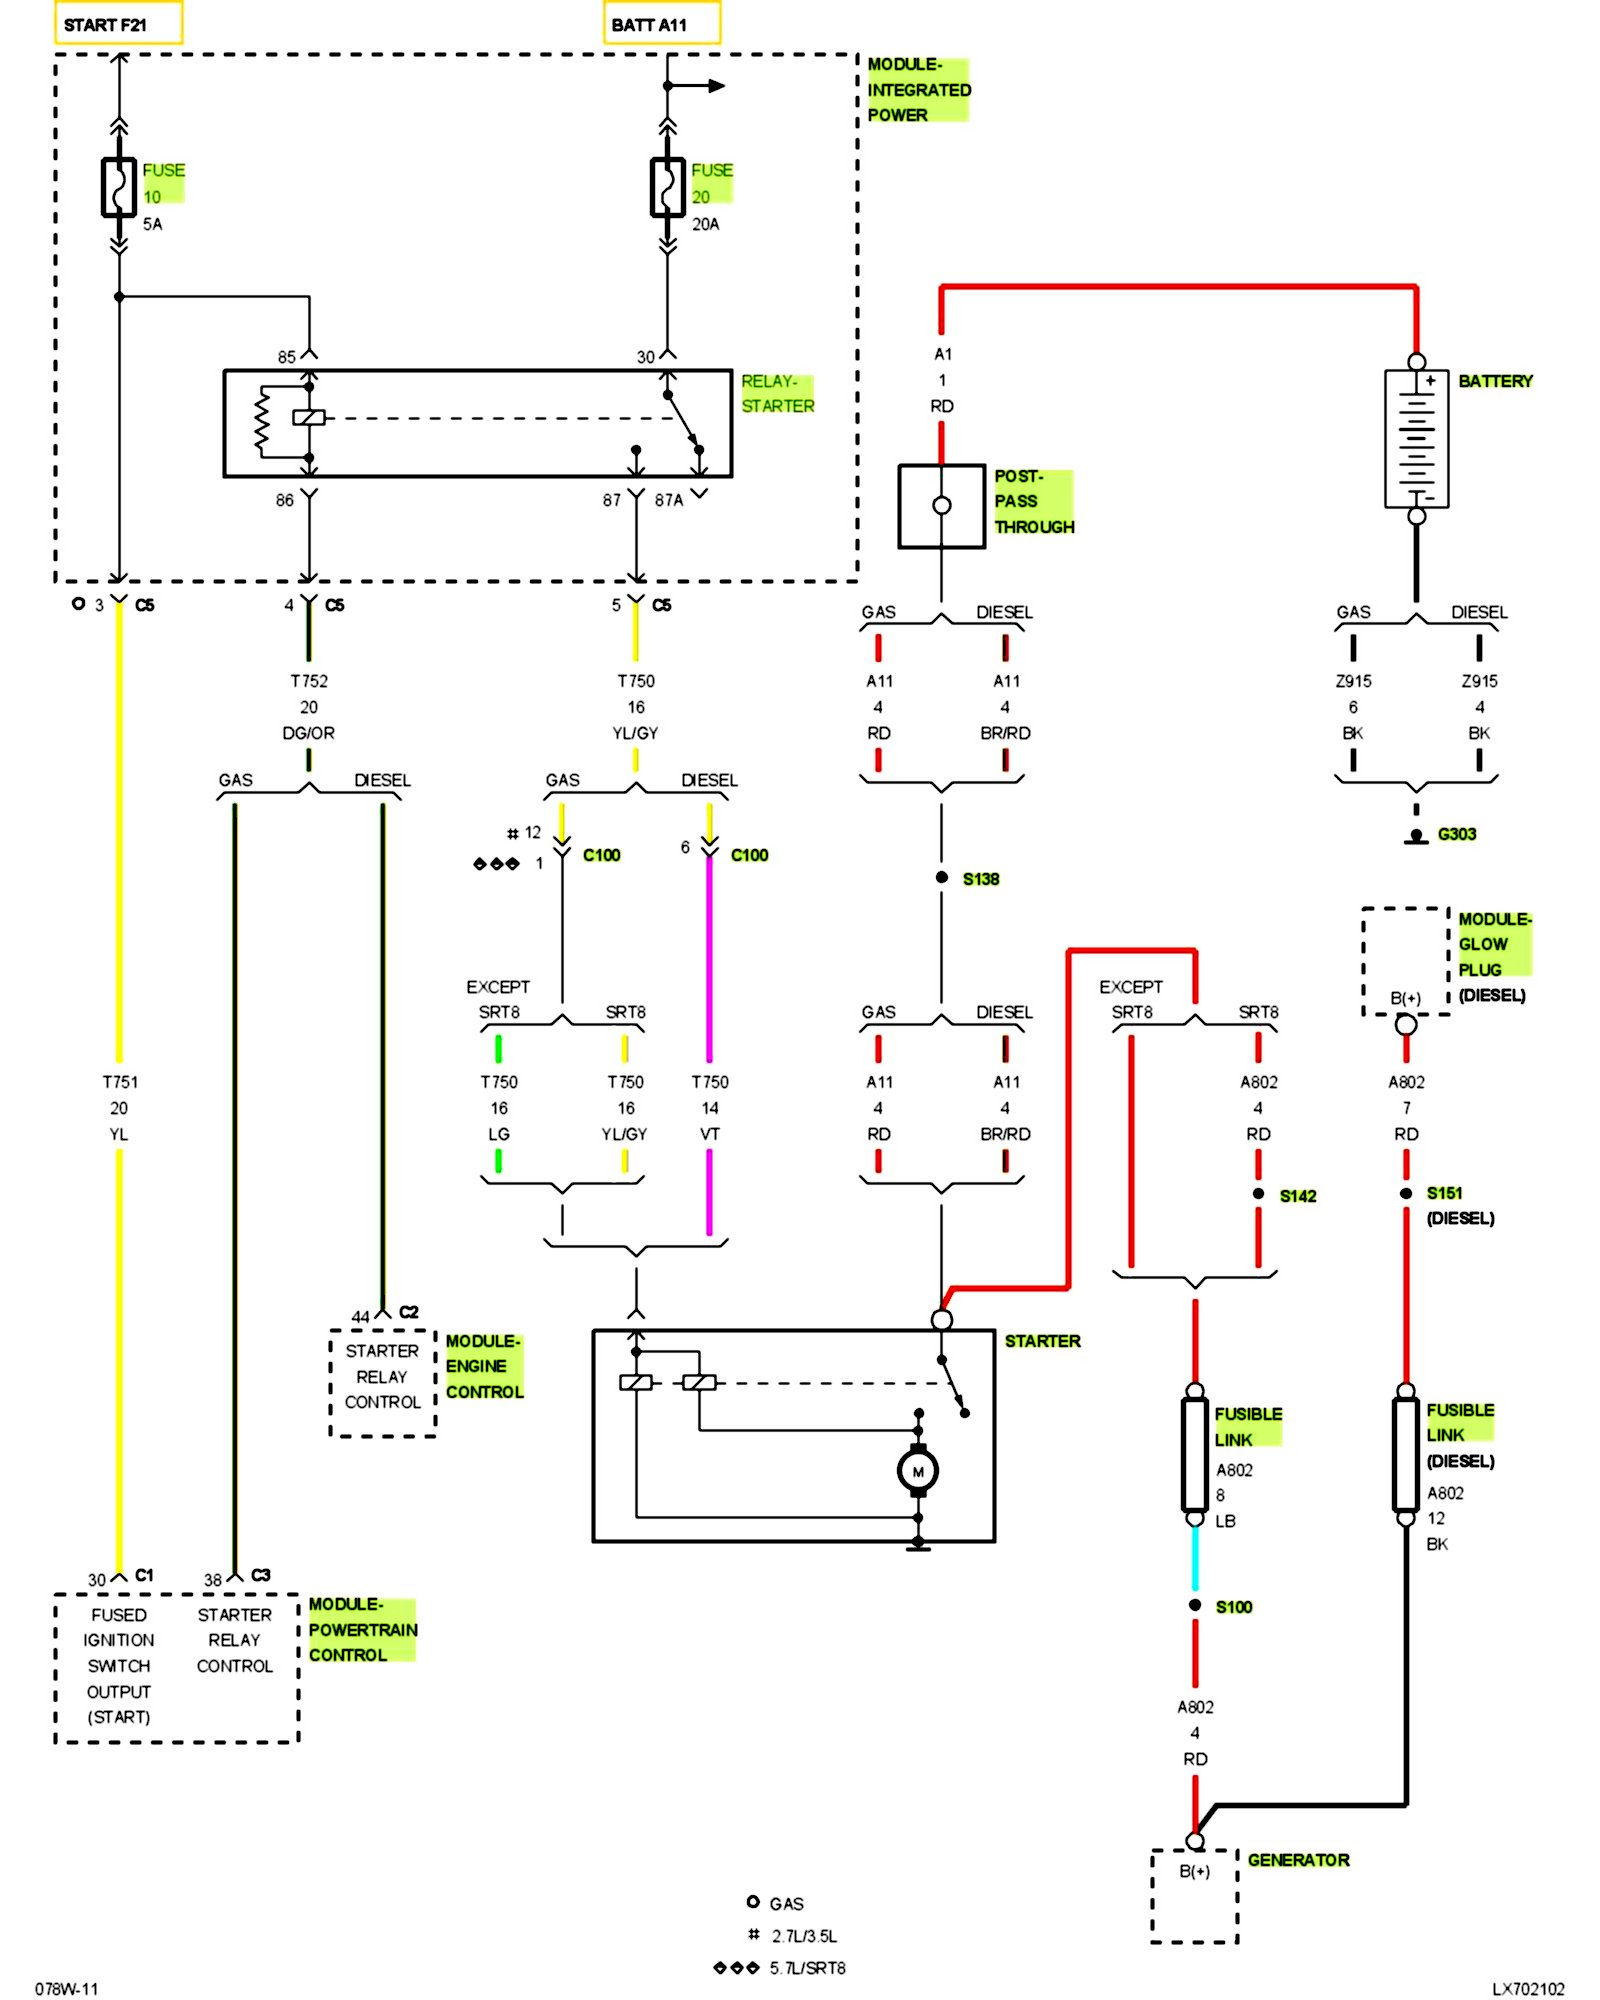 DIAGRAM] Wiring Diagram Chrysler Starter Relay FULL Version HD Quality  Starter Relay - DIAGRAMINGCO.ARTE-VIAGGI.ITarte-viaggi.it